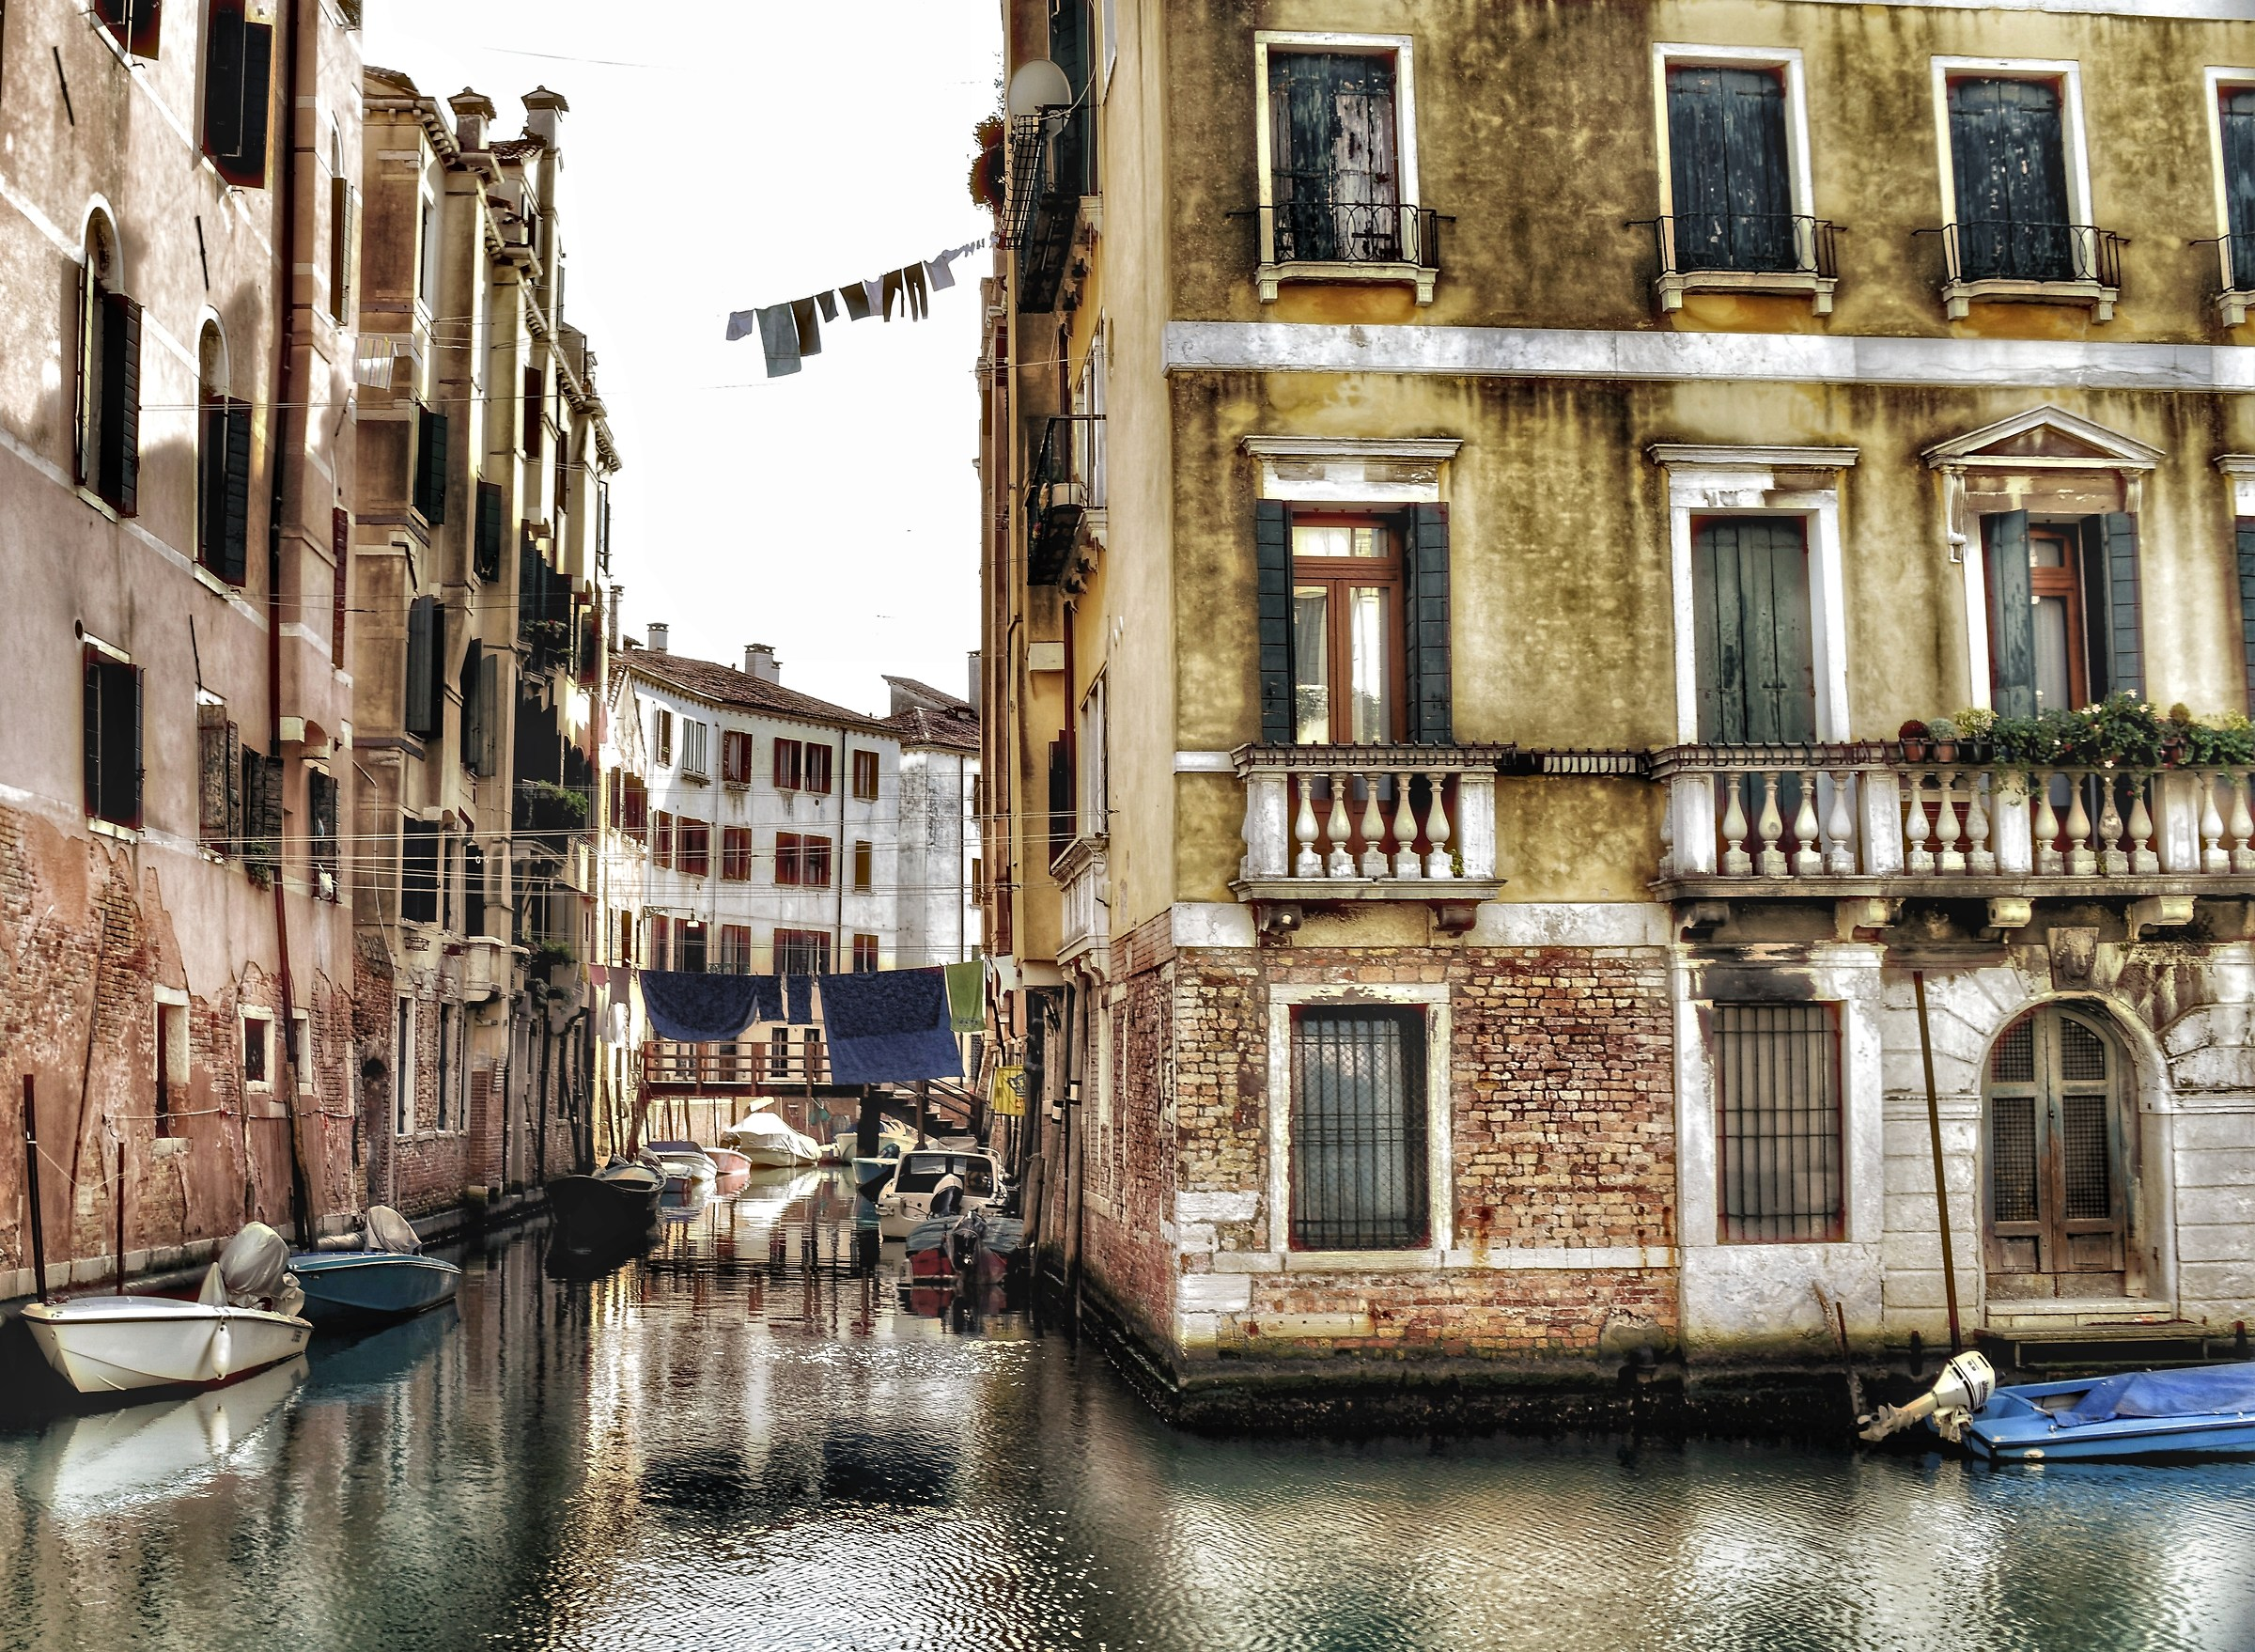 The other Venice...